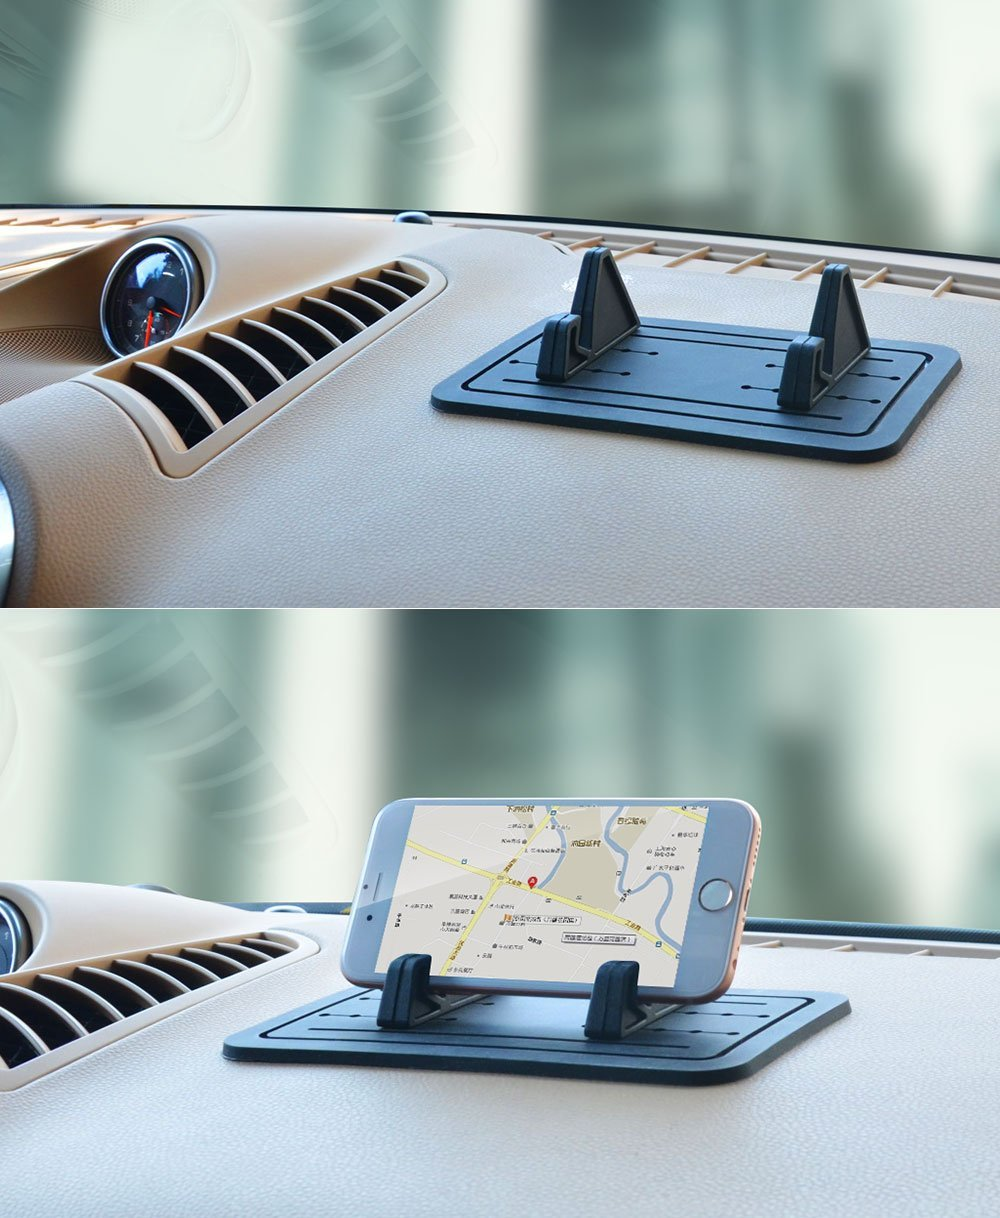 Cobao Car Silicone Anti-Slip Pad Dash Mat /& Cell Phone Mount Holder Cradle Dock for Any Smartphone iPhone X//8//7//6//5//4 Samsung Galaxy S7//S6//S5//S4 Edge 7 /& GPS Table Holder 2 in 1 S Plus